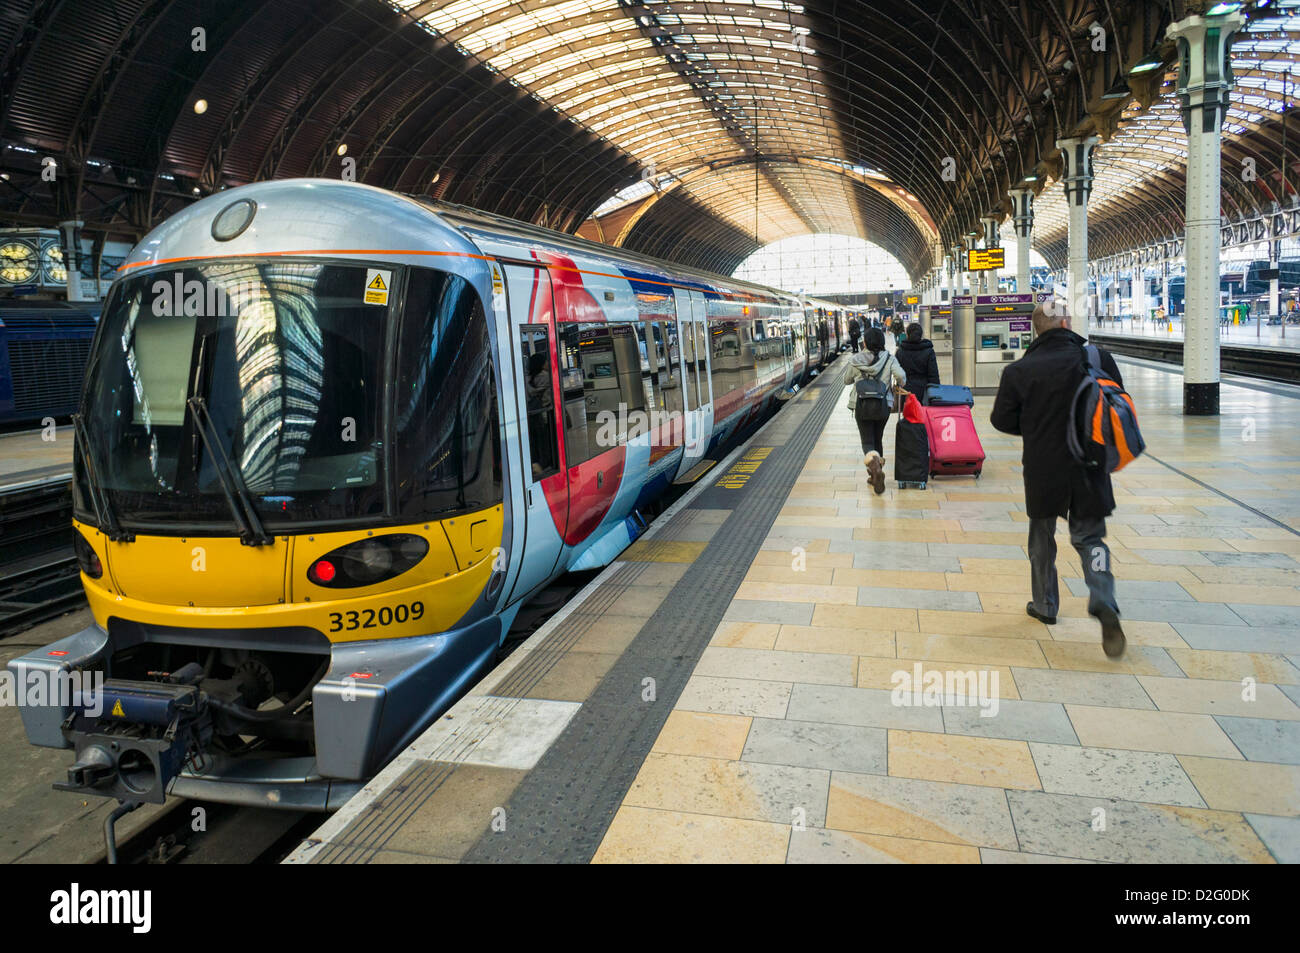 Train platform at Paddington station, London, train station, UK with people boarding a train - Stock Image